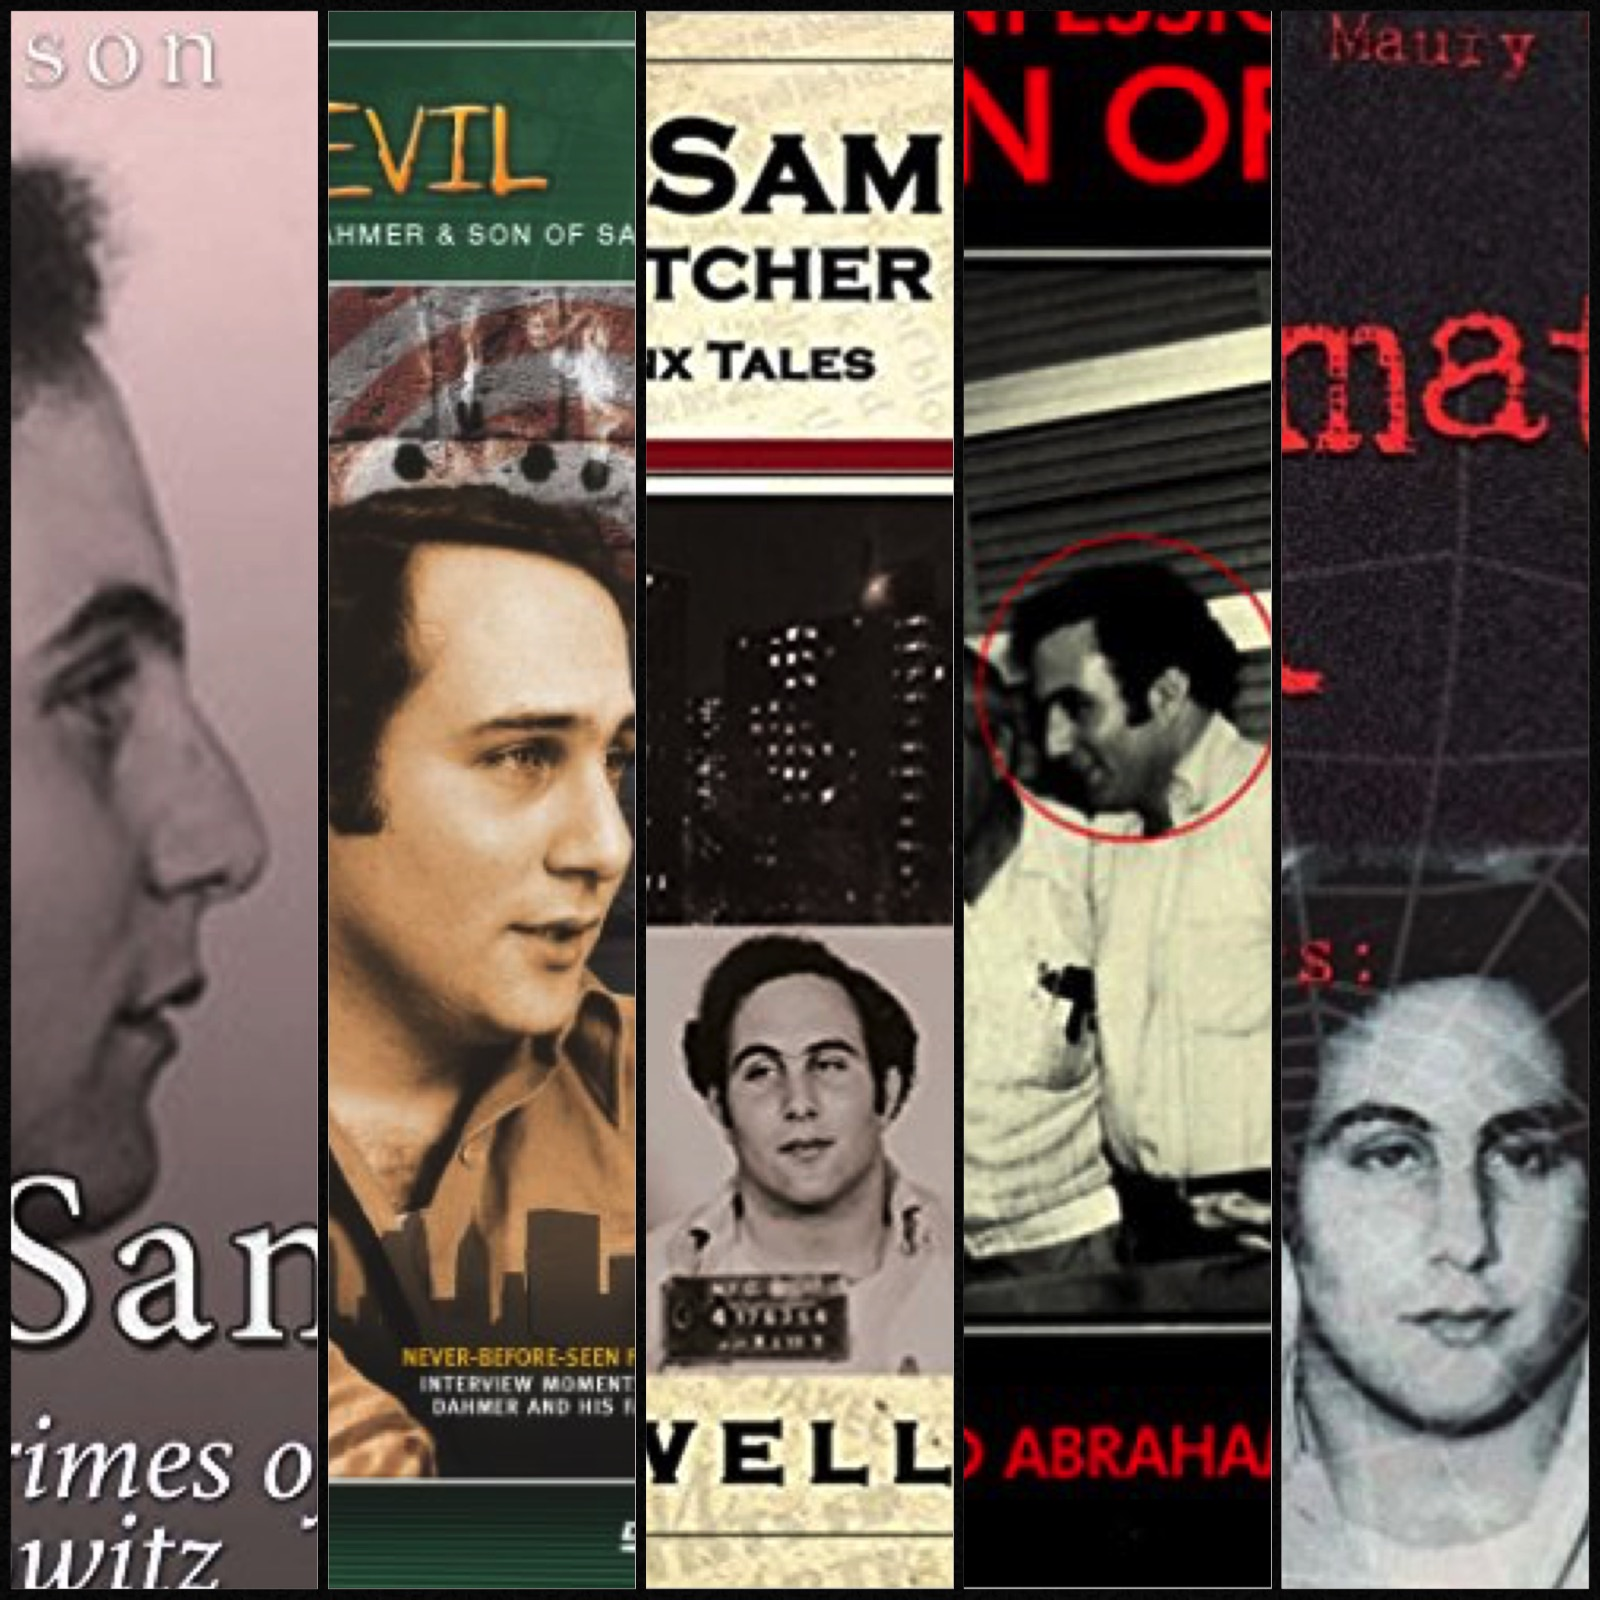 Songs About or Inspired by the Son of Sam | Playlist